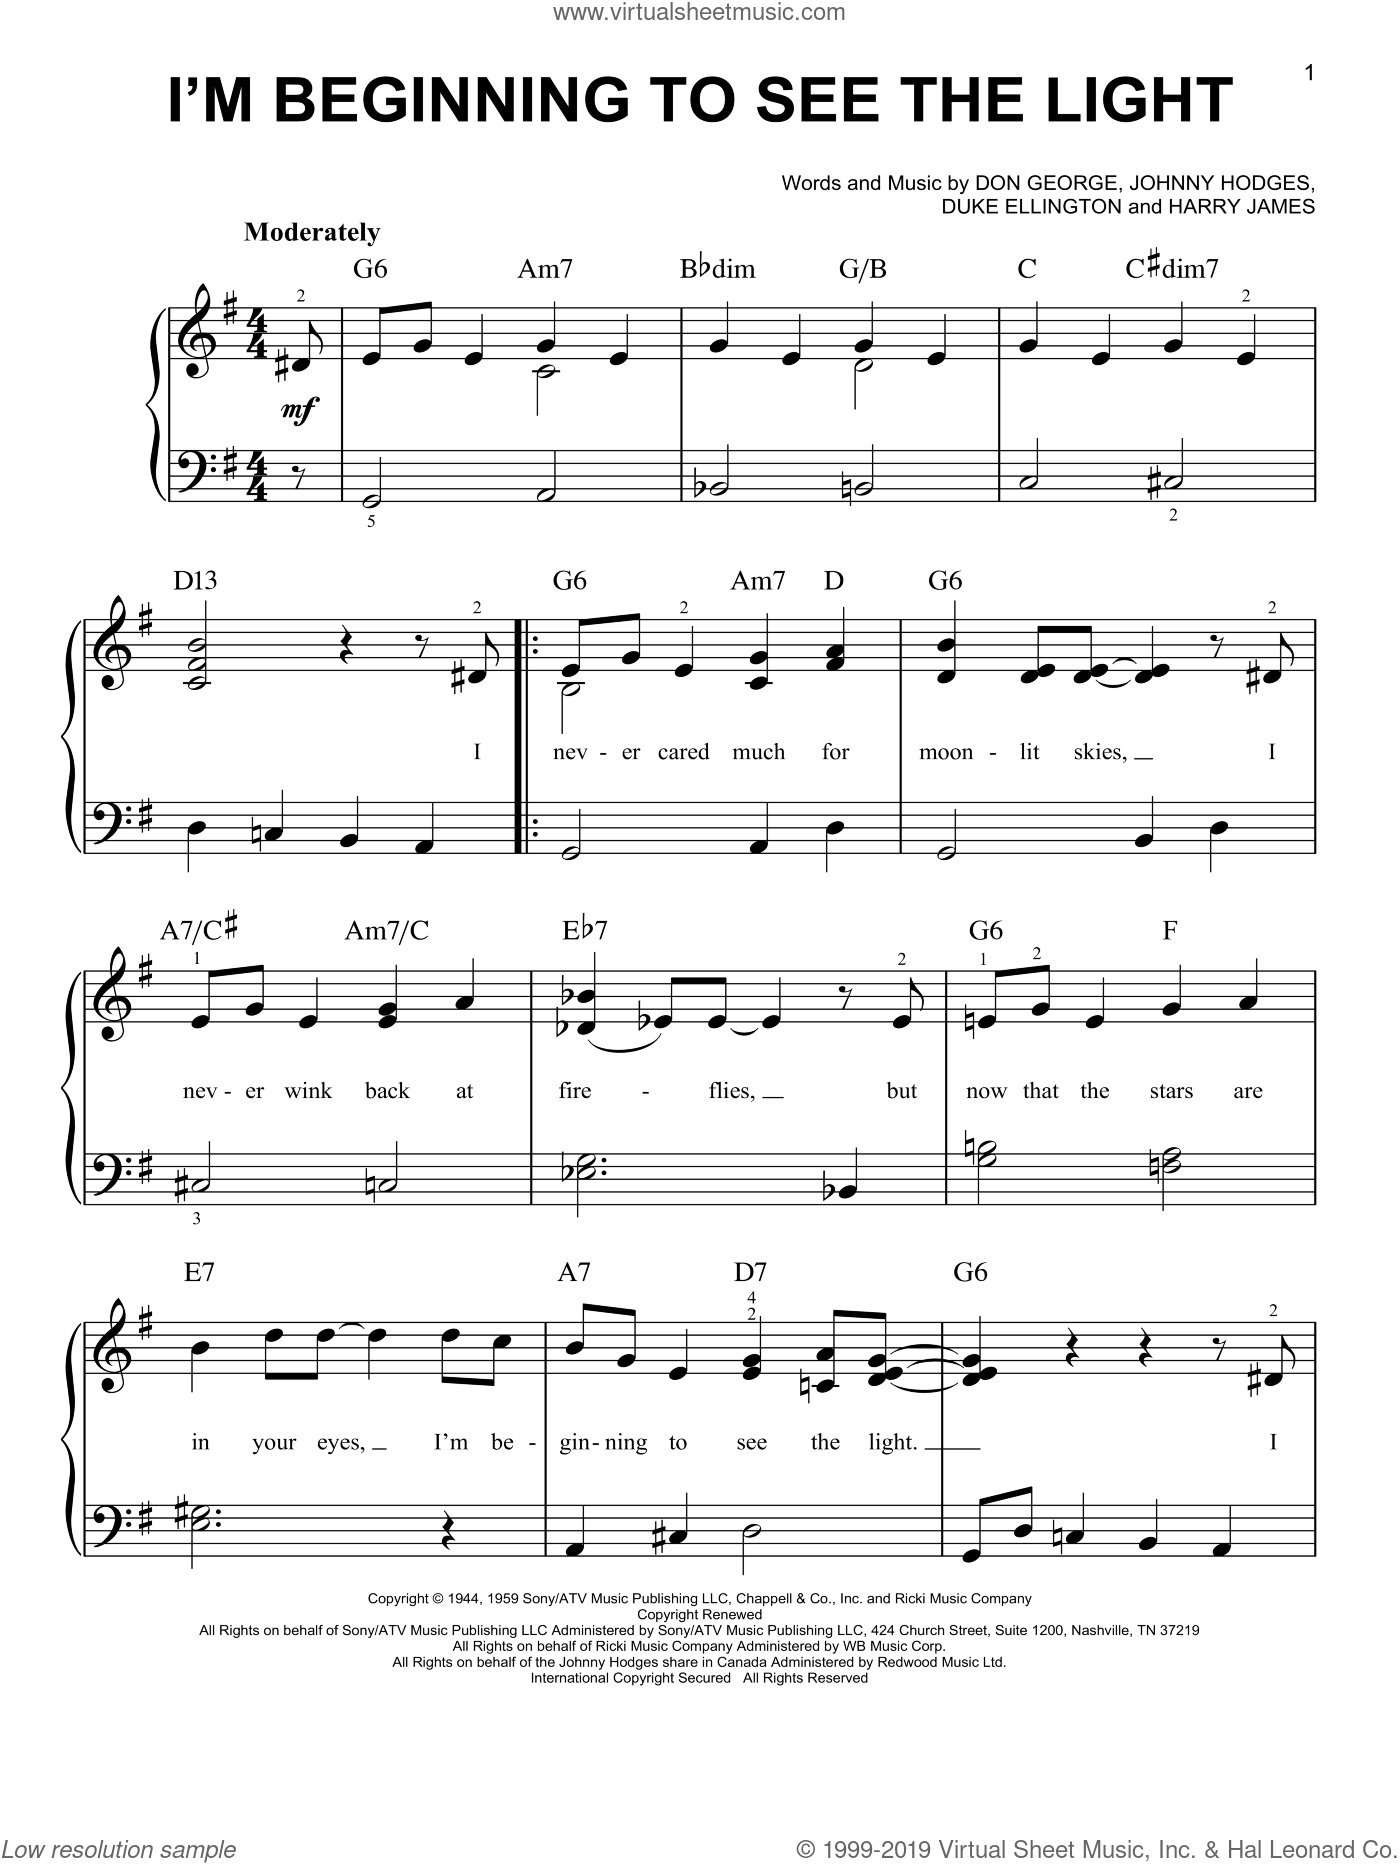 I'm Beginning To See The Light sheet music for piano solo by Duke Ellington, Don George, Harry James and Johnny Hodges. Score Image Preview.